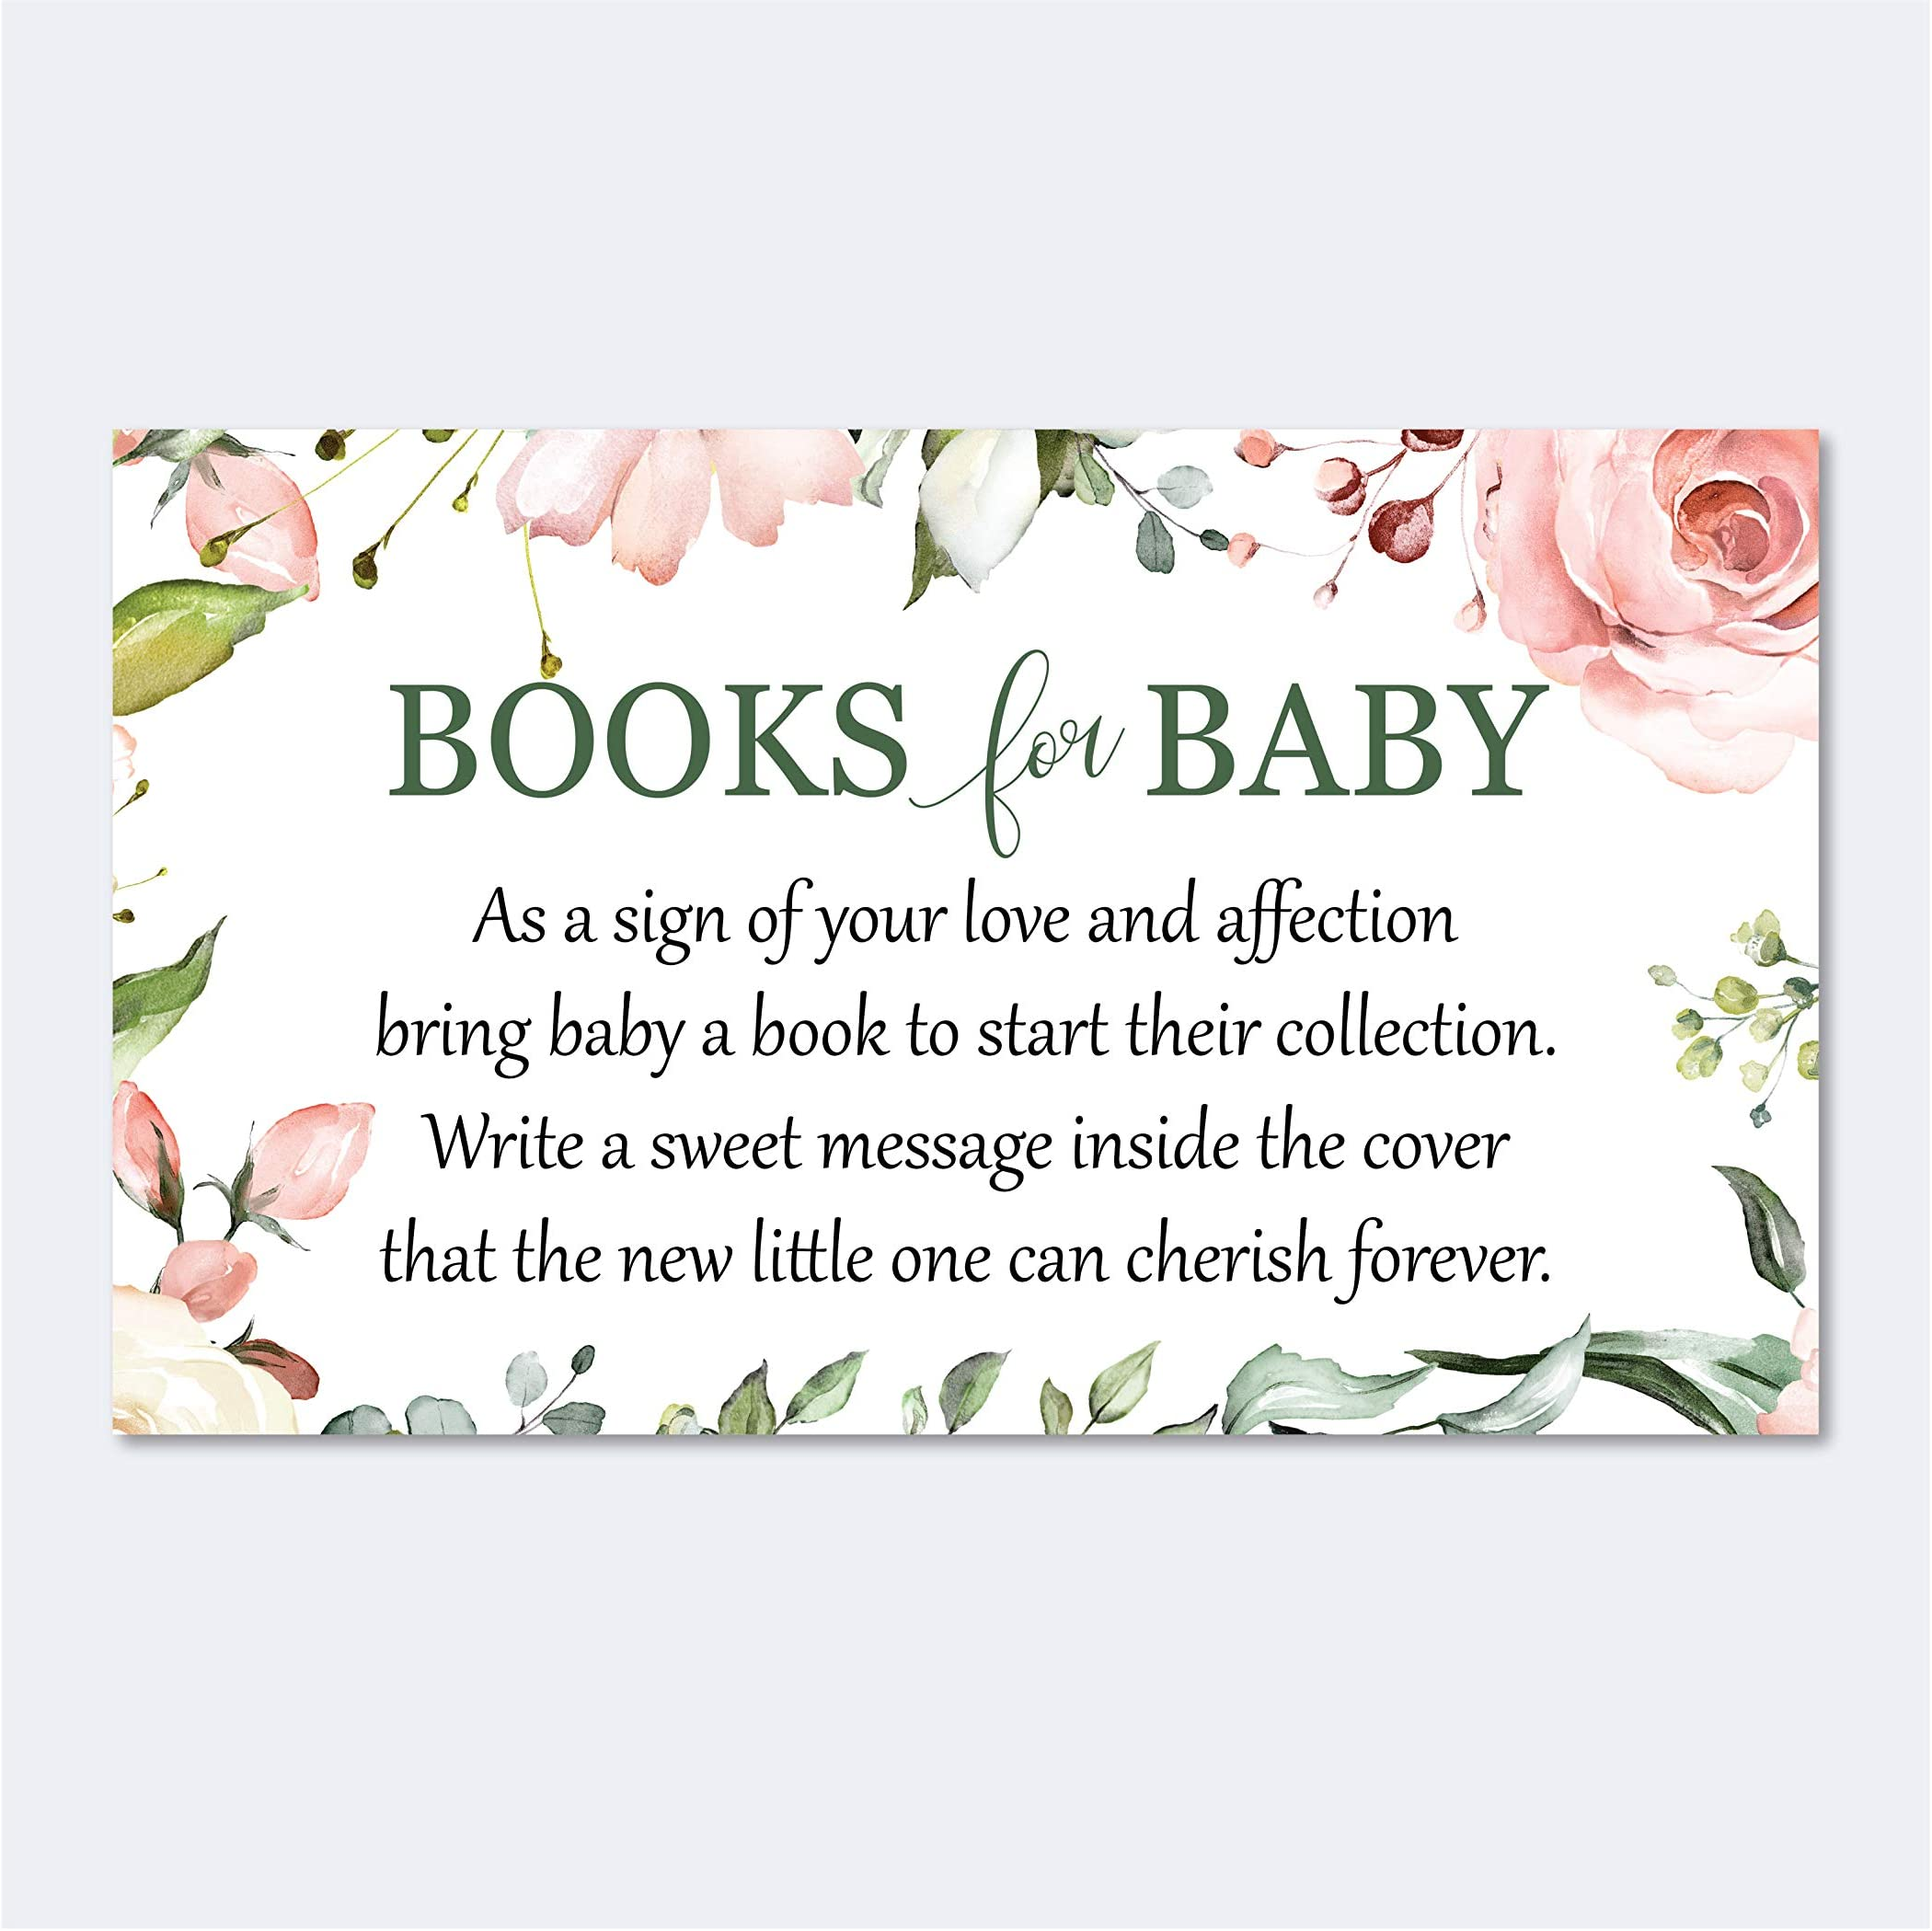 Blush and Burgundy Floral Books for Baby Enclosure Card  Book Request Cards  Registry Cards  Book Insert Cards  Details Card  LR2022